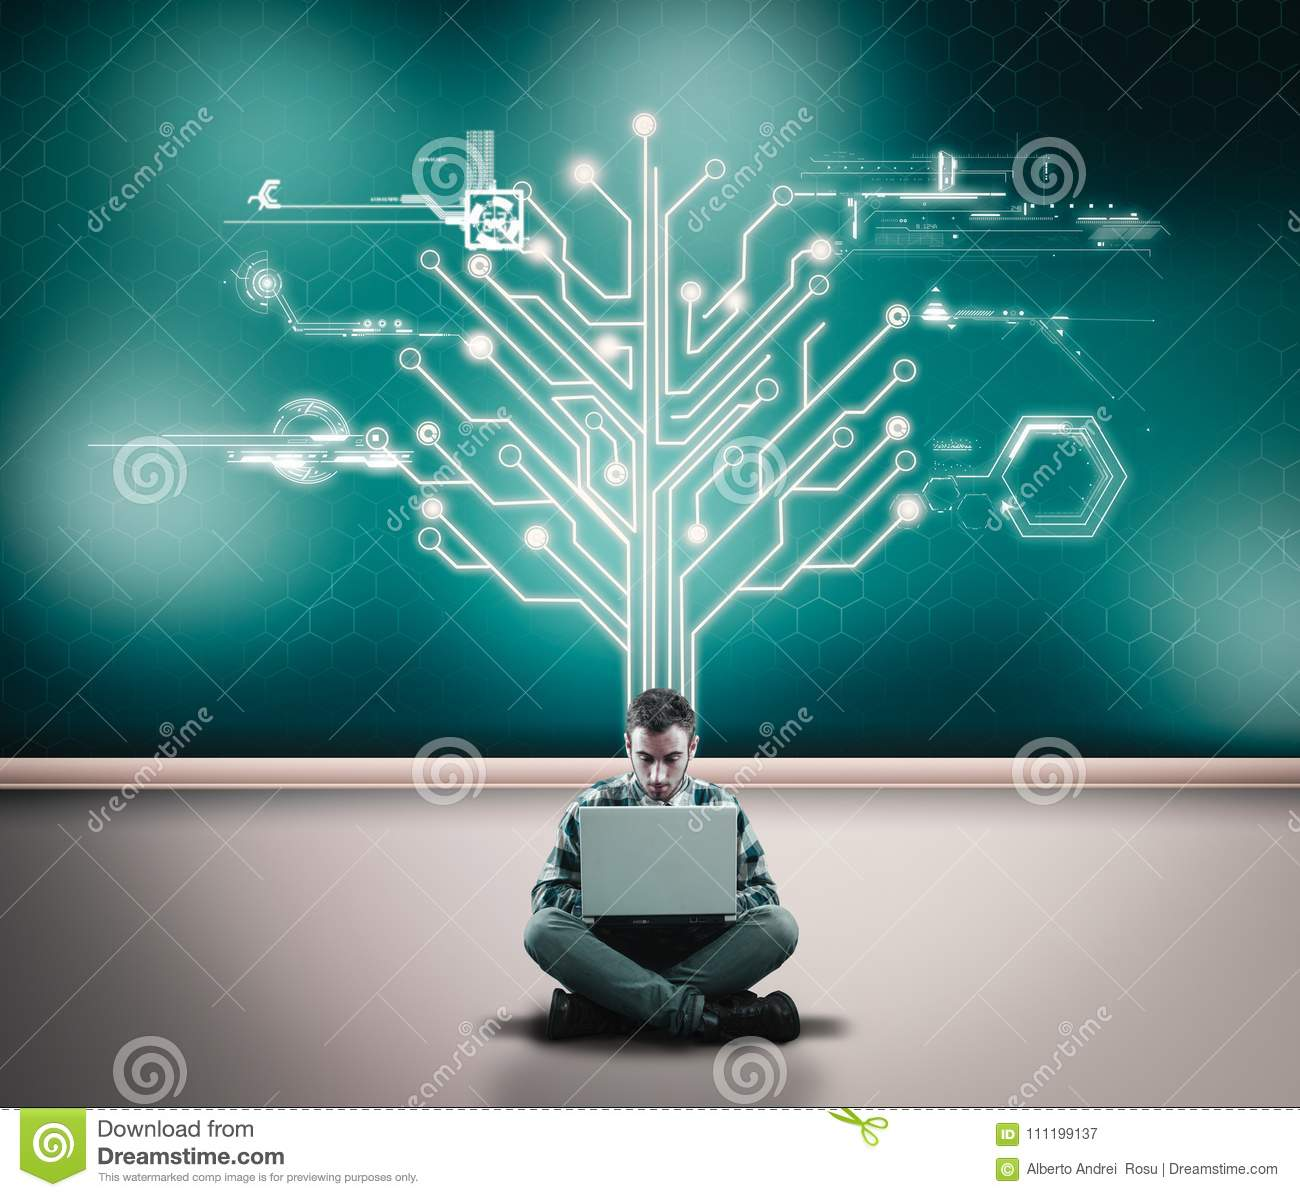 Businessman working on his laptop in front of a wall with a circuit board tree